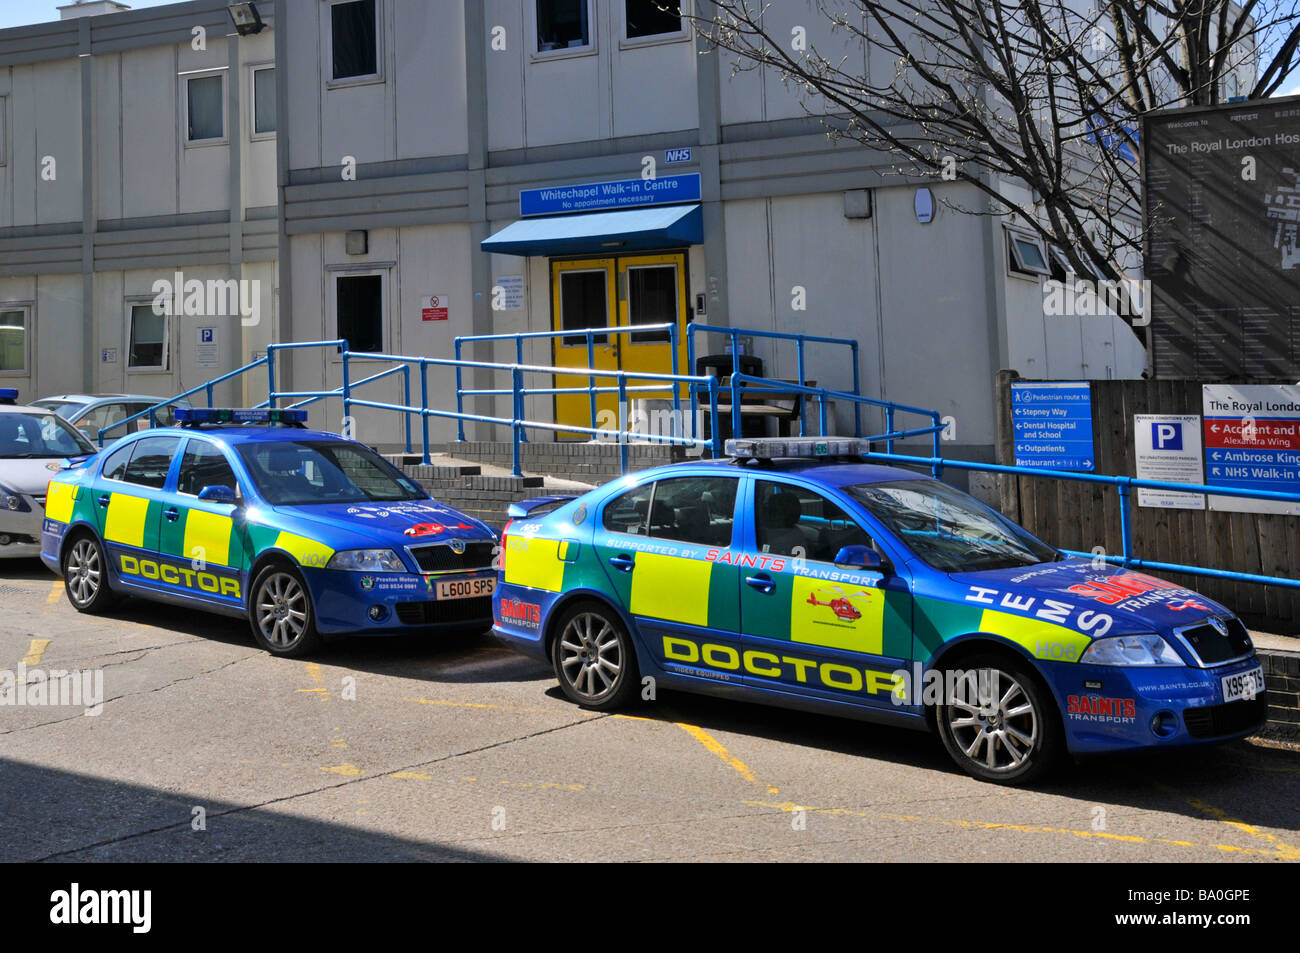 Sponsored Doctors cars parked outside Whitechapel NHS walk in centre within the grounds of the Royal London Hospital - Stock Image